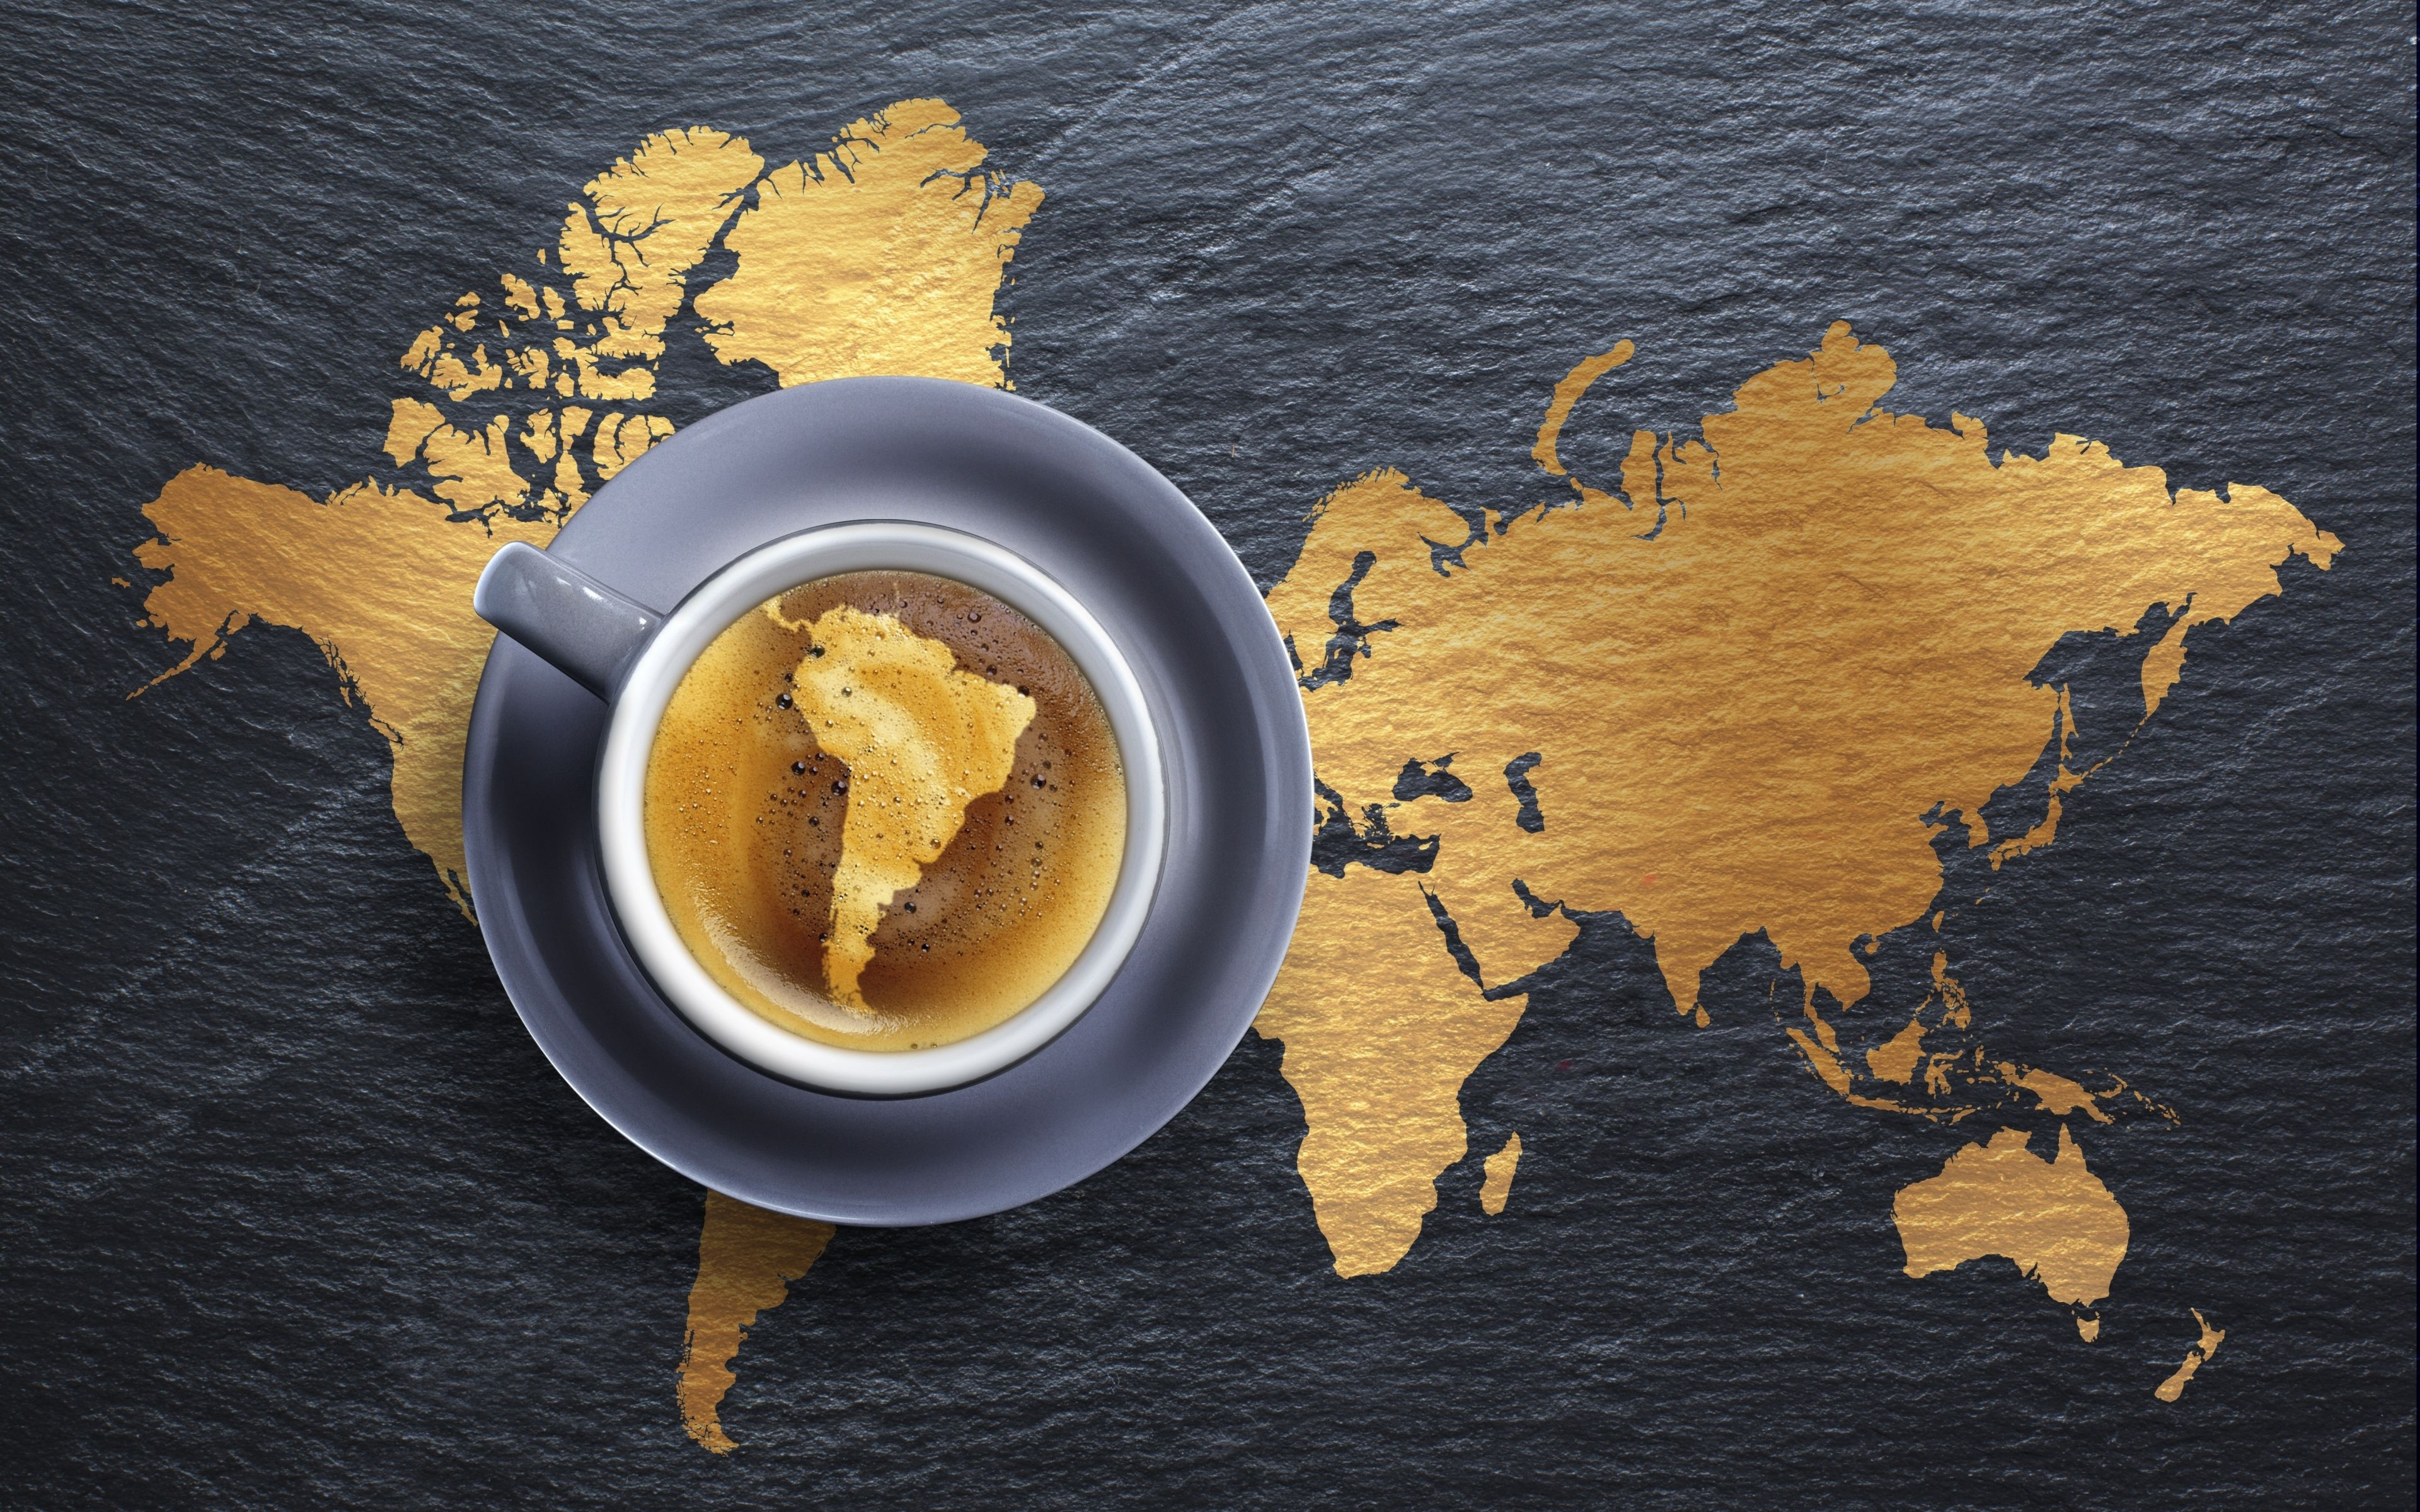 Coffee, Foam, Beverage, Cup, Saucer, Creative, Continents